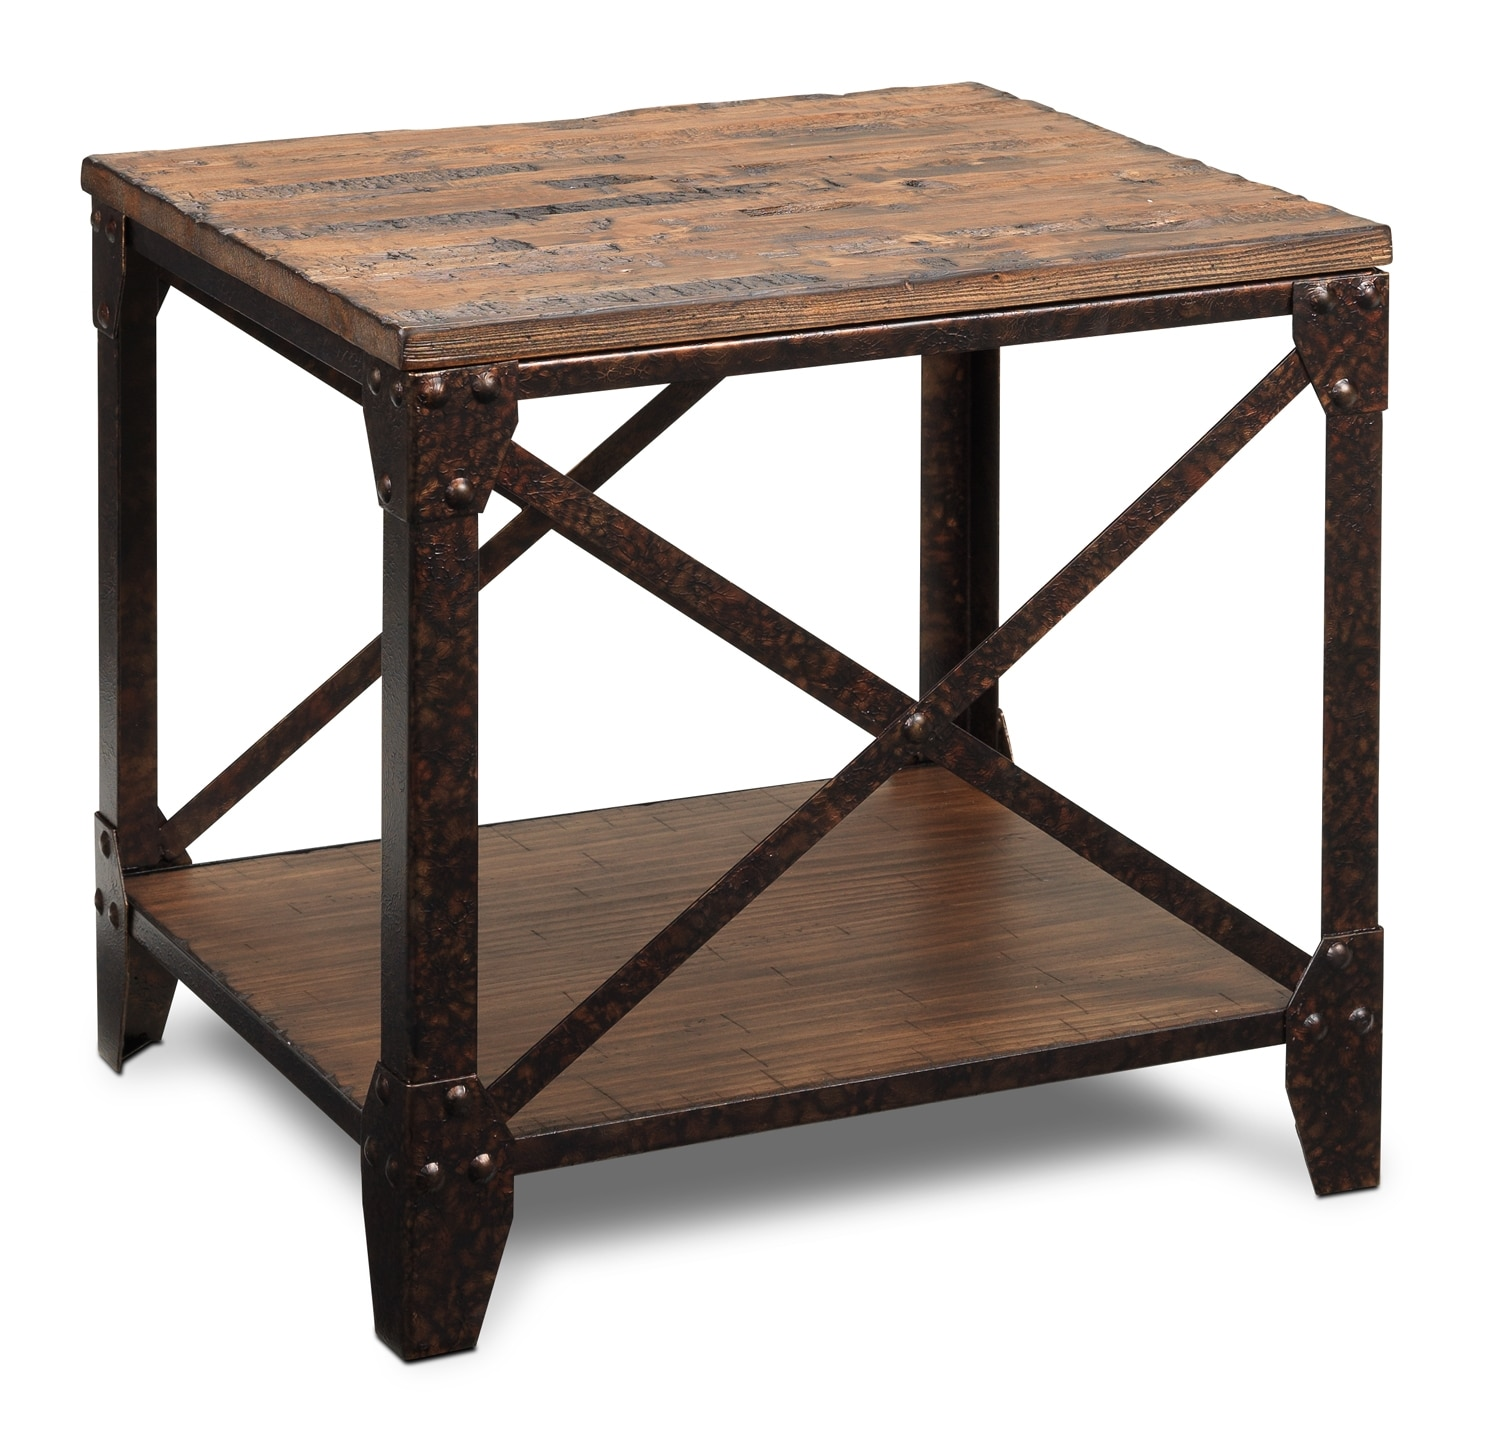 Accent and Occasional Furniture - Pinebrook End Table - Distressed Natural Pine